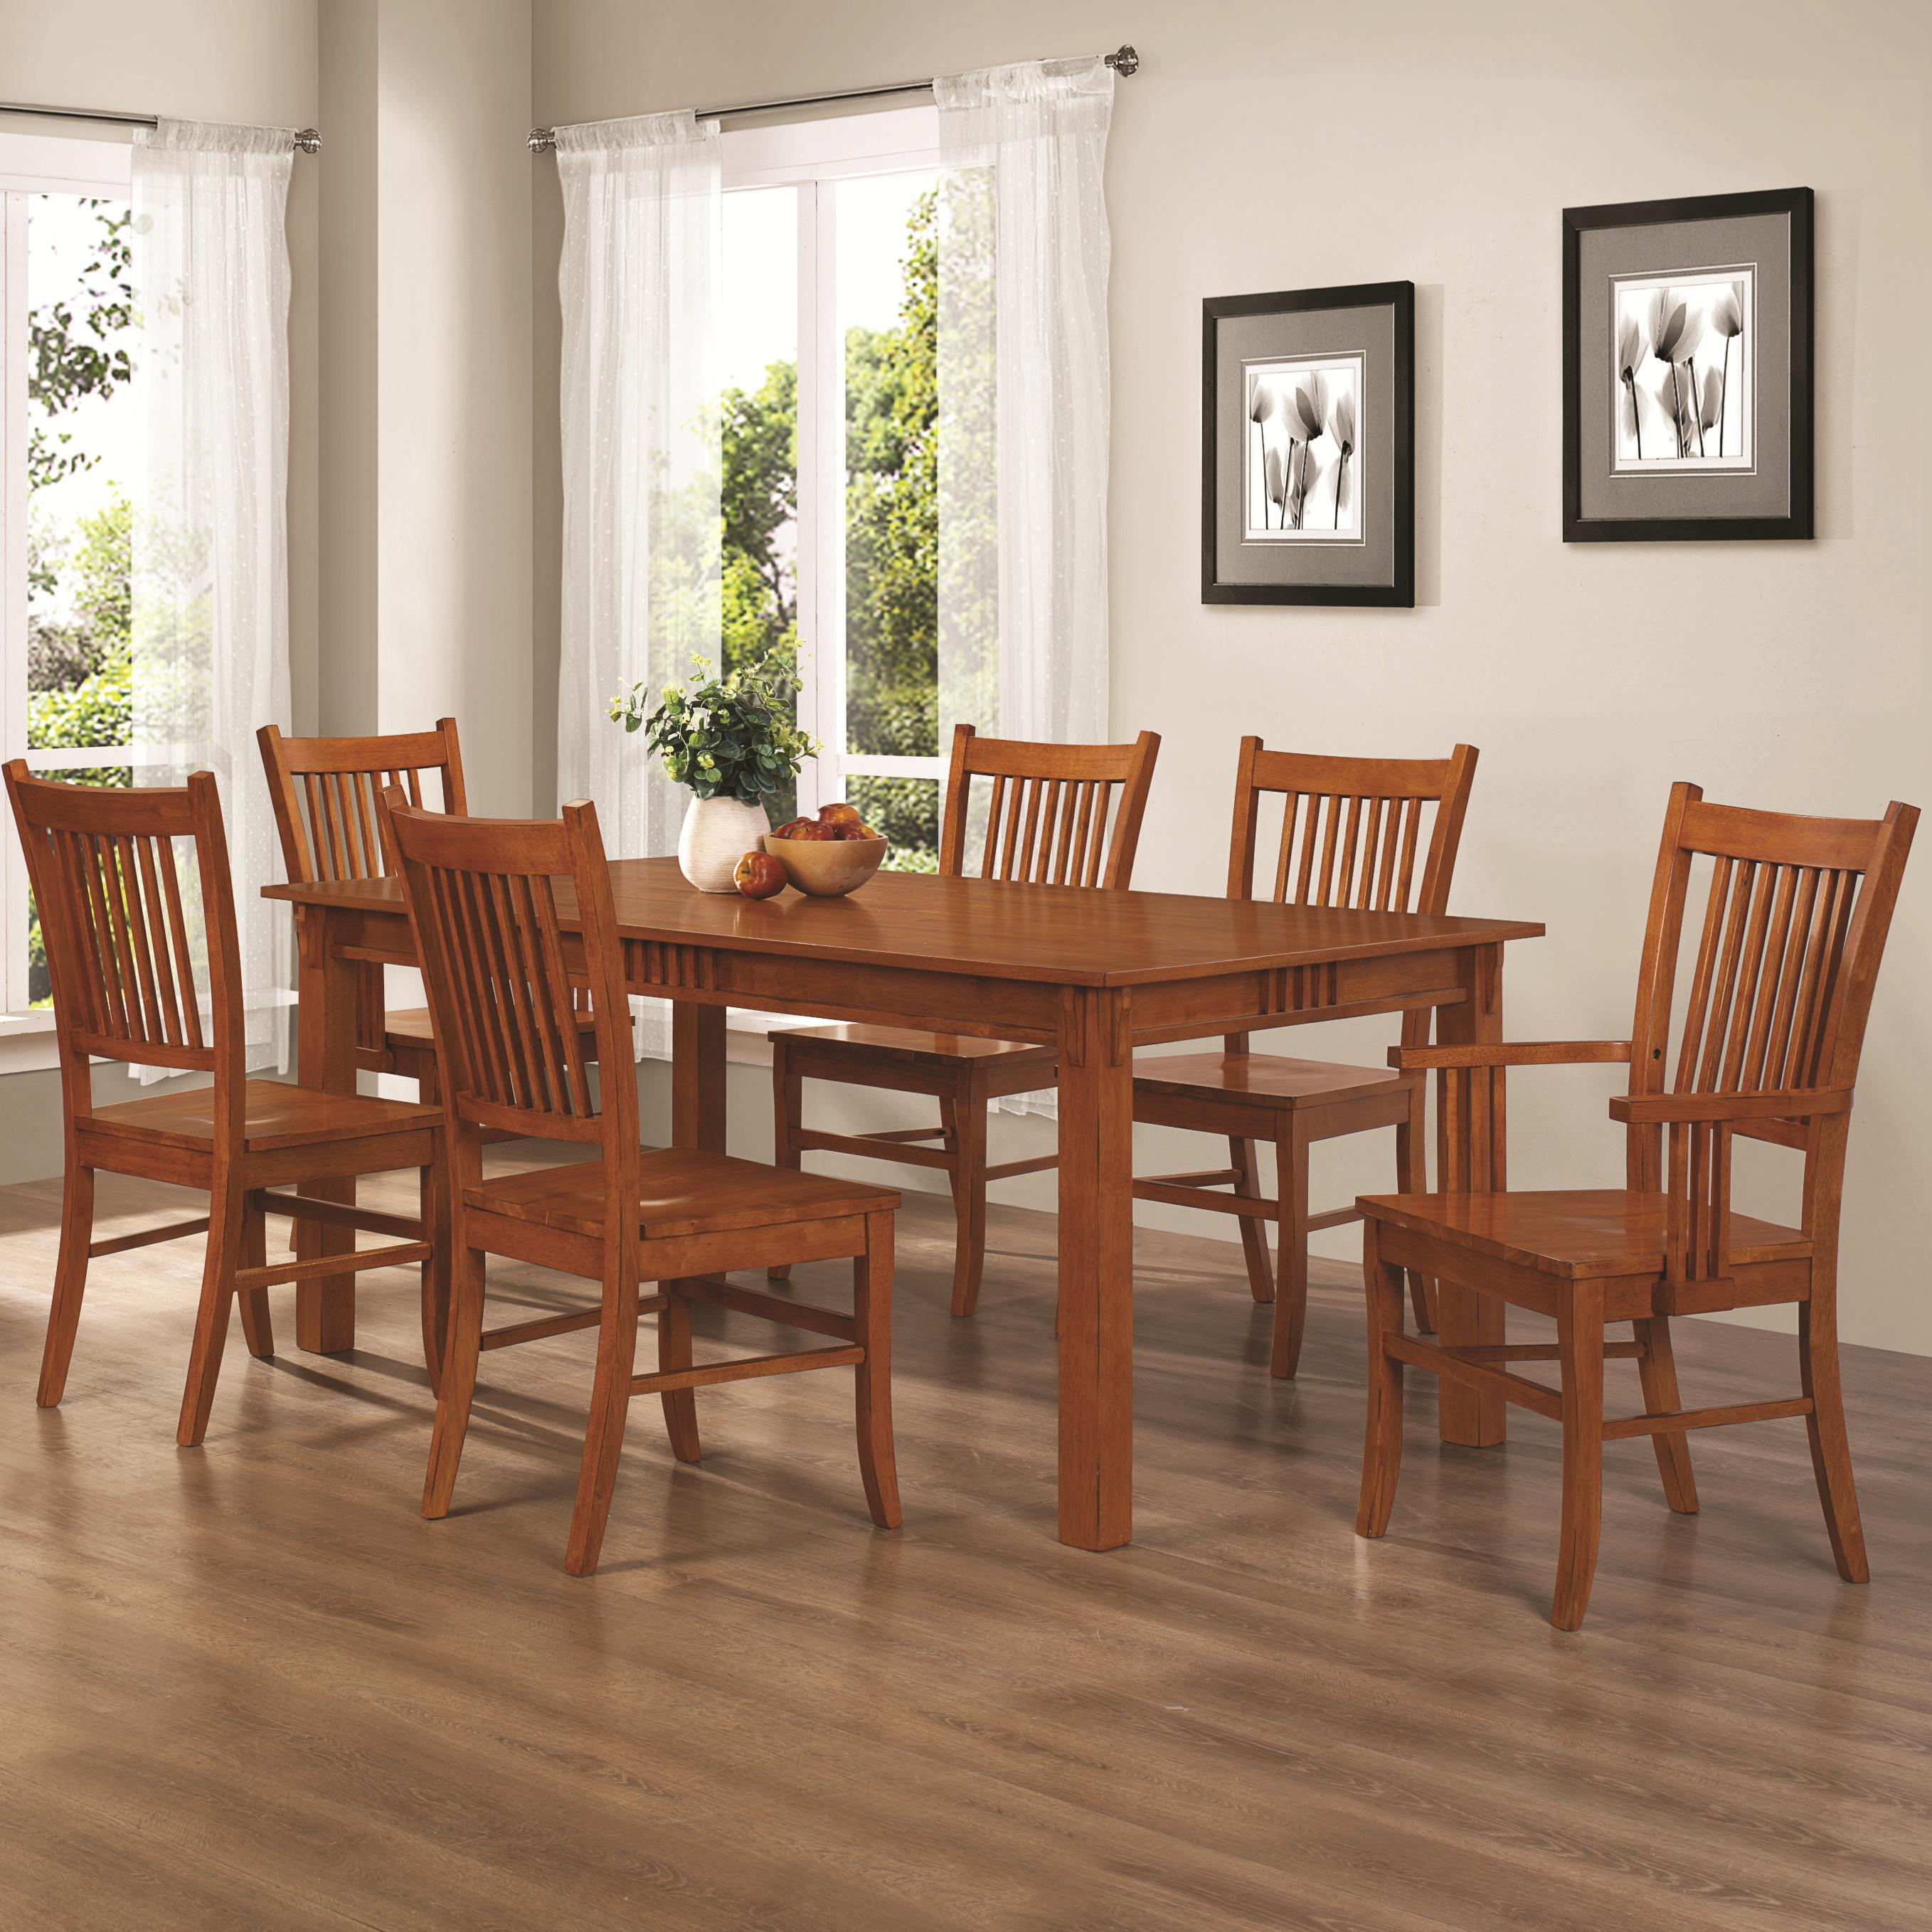 Marbrisa 7 Piece Dining Set by Coaster at Standard Furniture